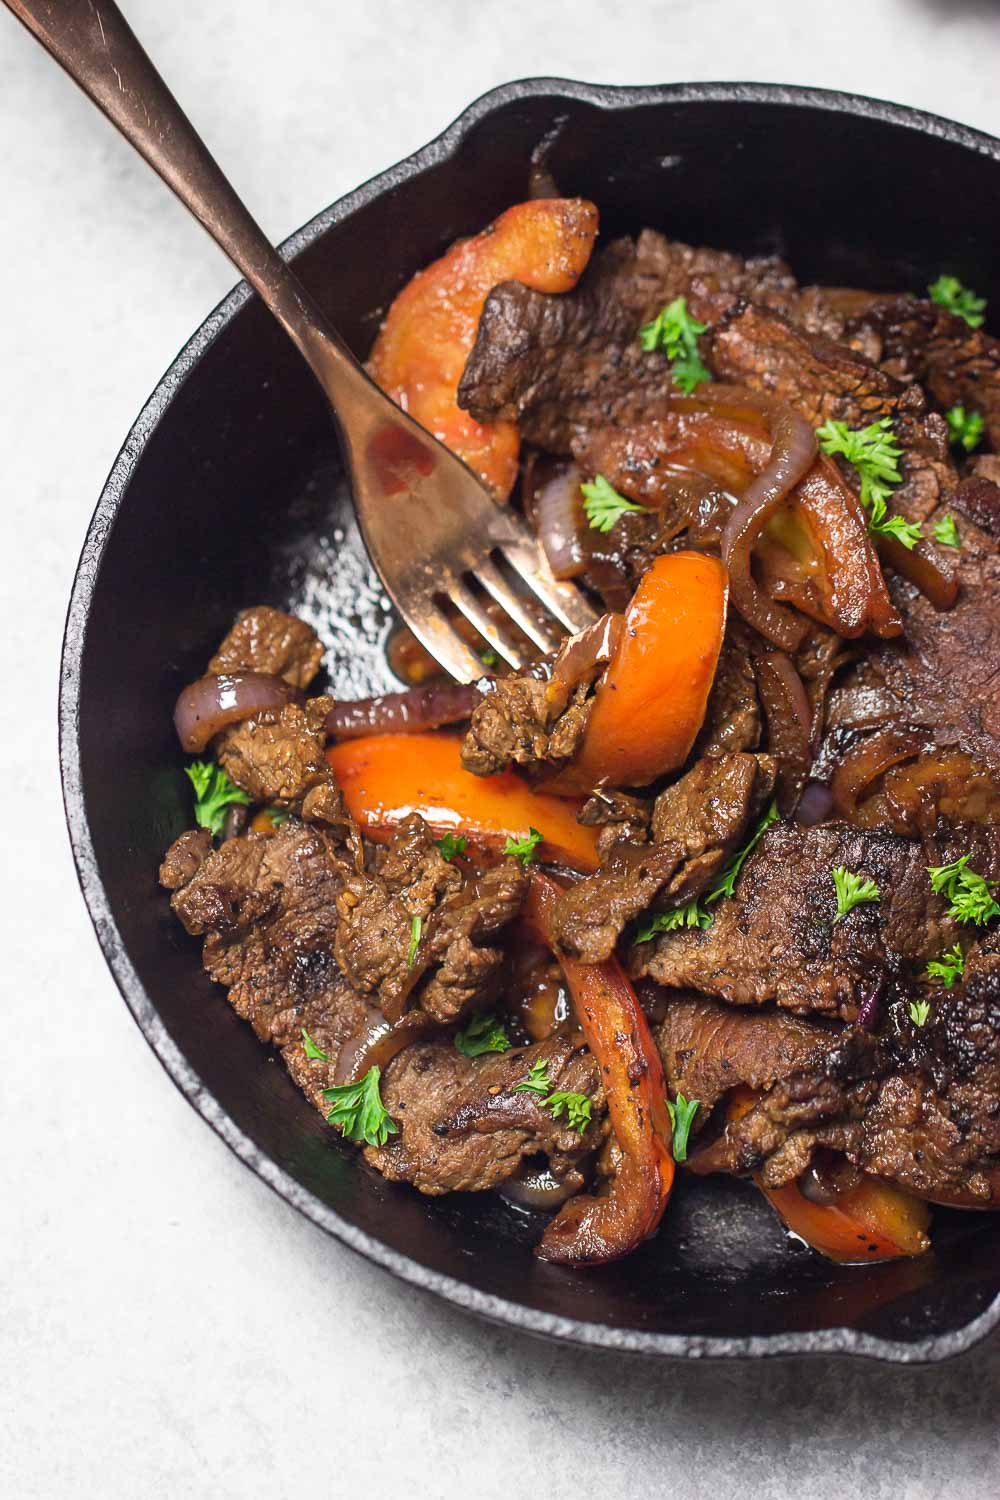 Peruvian skirt steak is a relatively inexpensive cut of meat with a lot of flavors. Super easy and great for weeknight dinner as it cooks quickly.